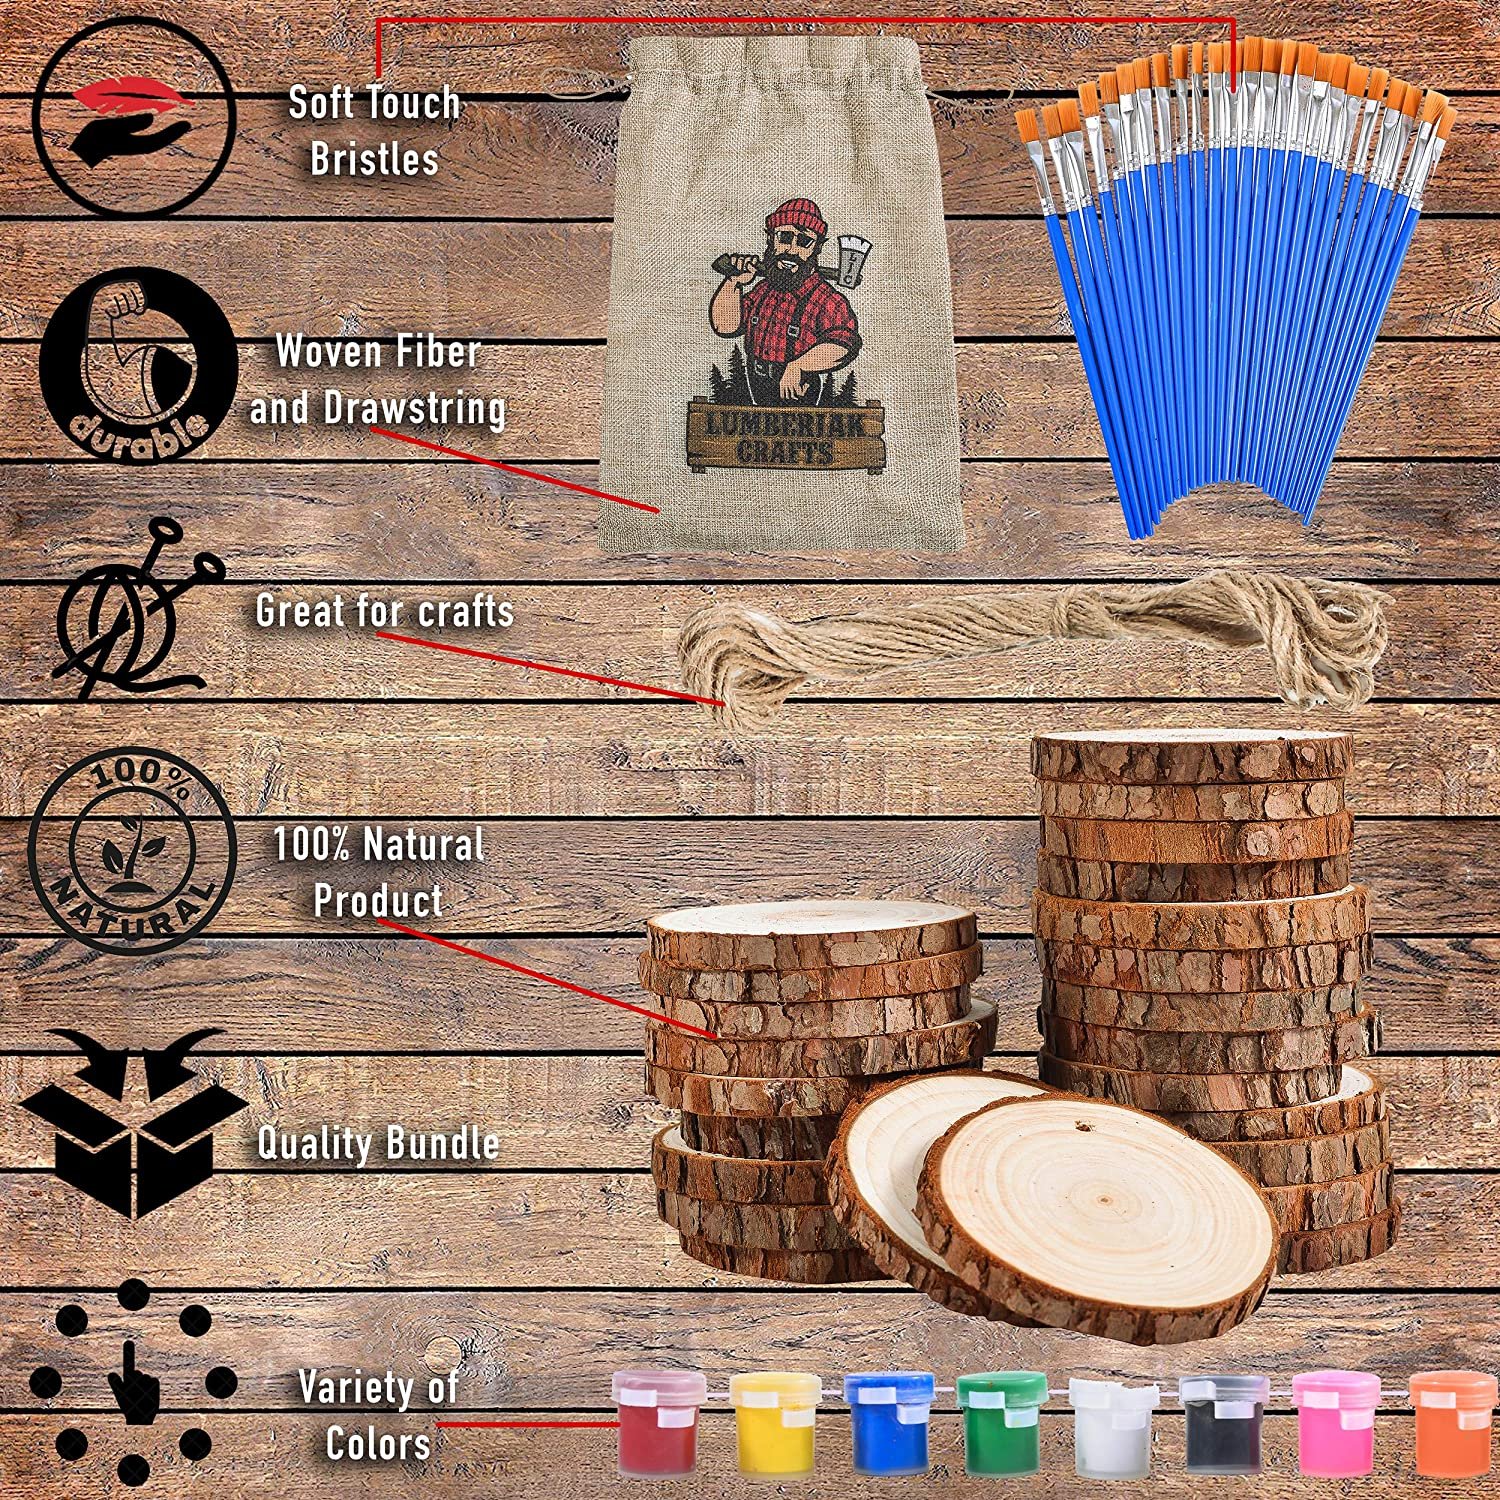 Pre-Drilled Wooden Discs for Arts and Crafts Ornaments by Lumberjak 24 Paint Brushes 24 Natural Wood Slices for Crafts Set Wood Coasters 2.85-3.15in 33Ft Hemp String 8 Paint Colors